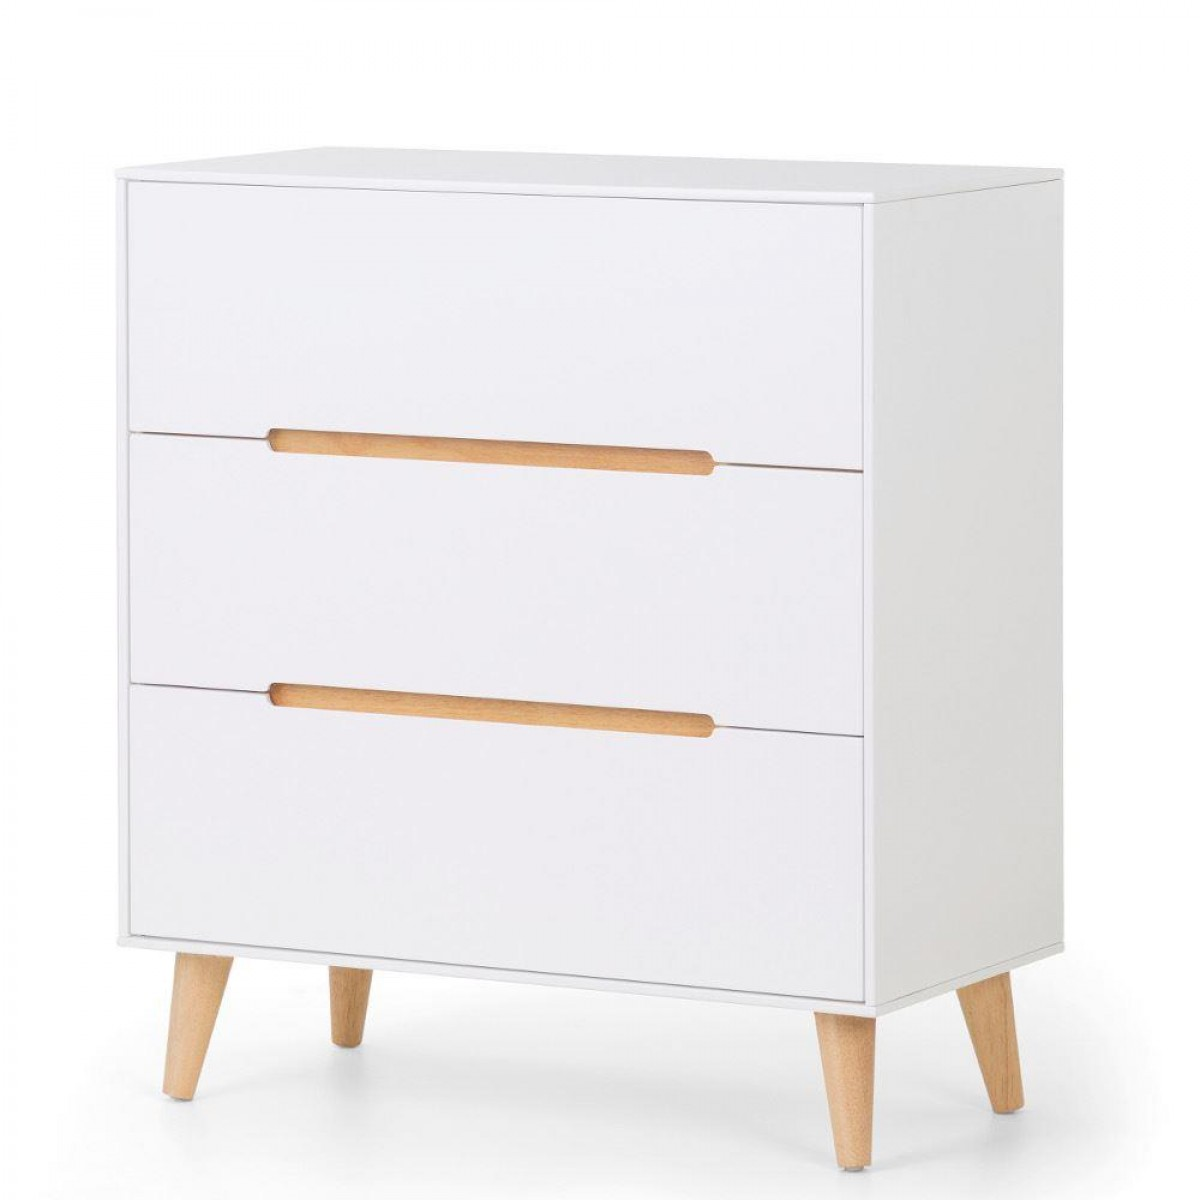 Alicia White and Oak 3 Drawer Wooden Chest